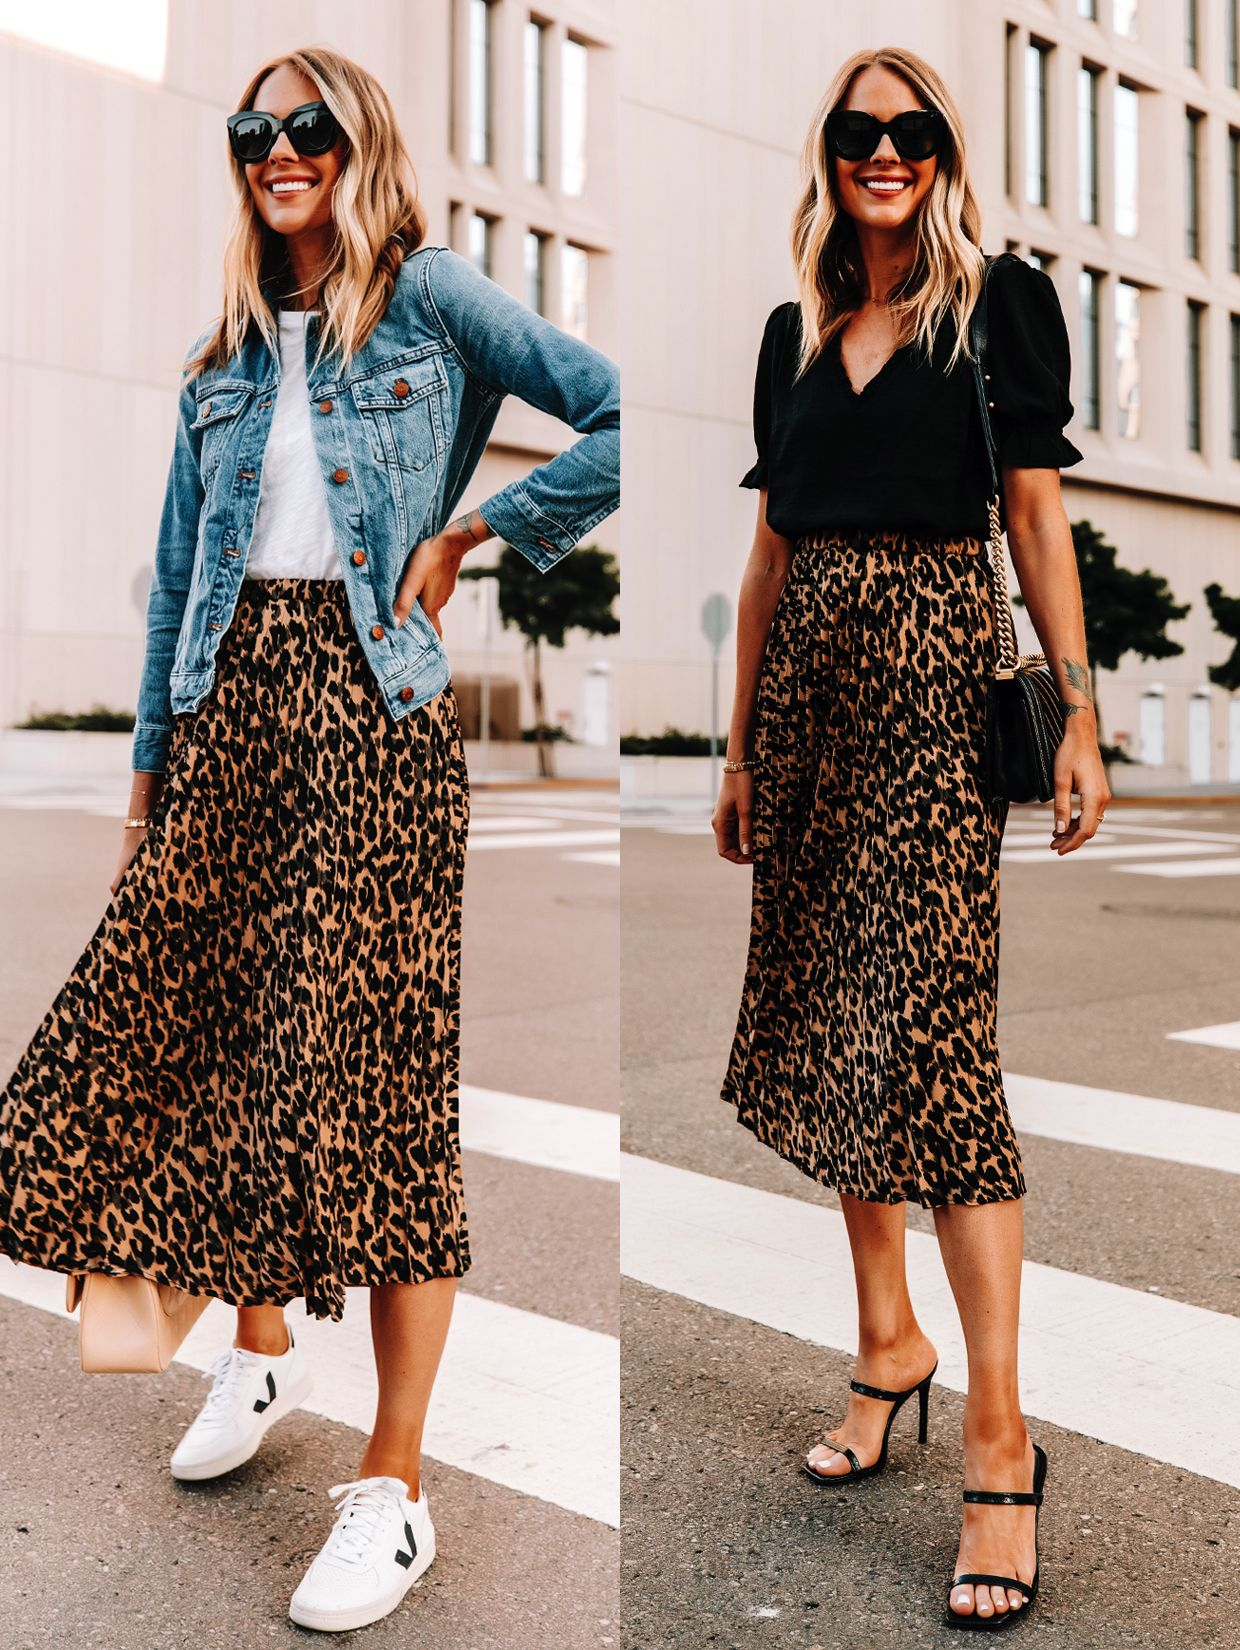 Leopard Skirt, How to Wear Leopard, How to Style Leopard, Jean Jacket  Outfit, Workwear Outfit   Skirt and sneakers, Fashion jackson, Leopard  skirt outfit